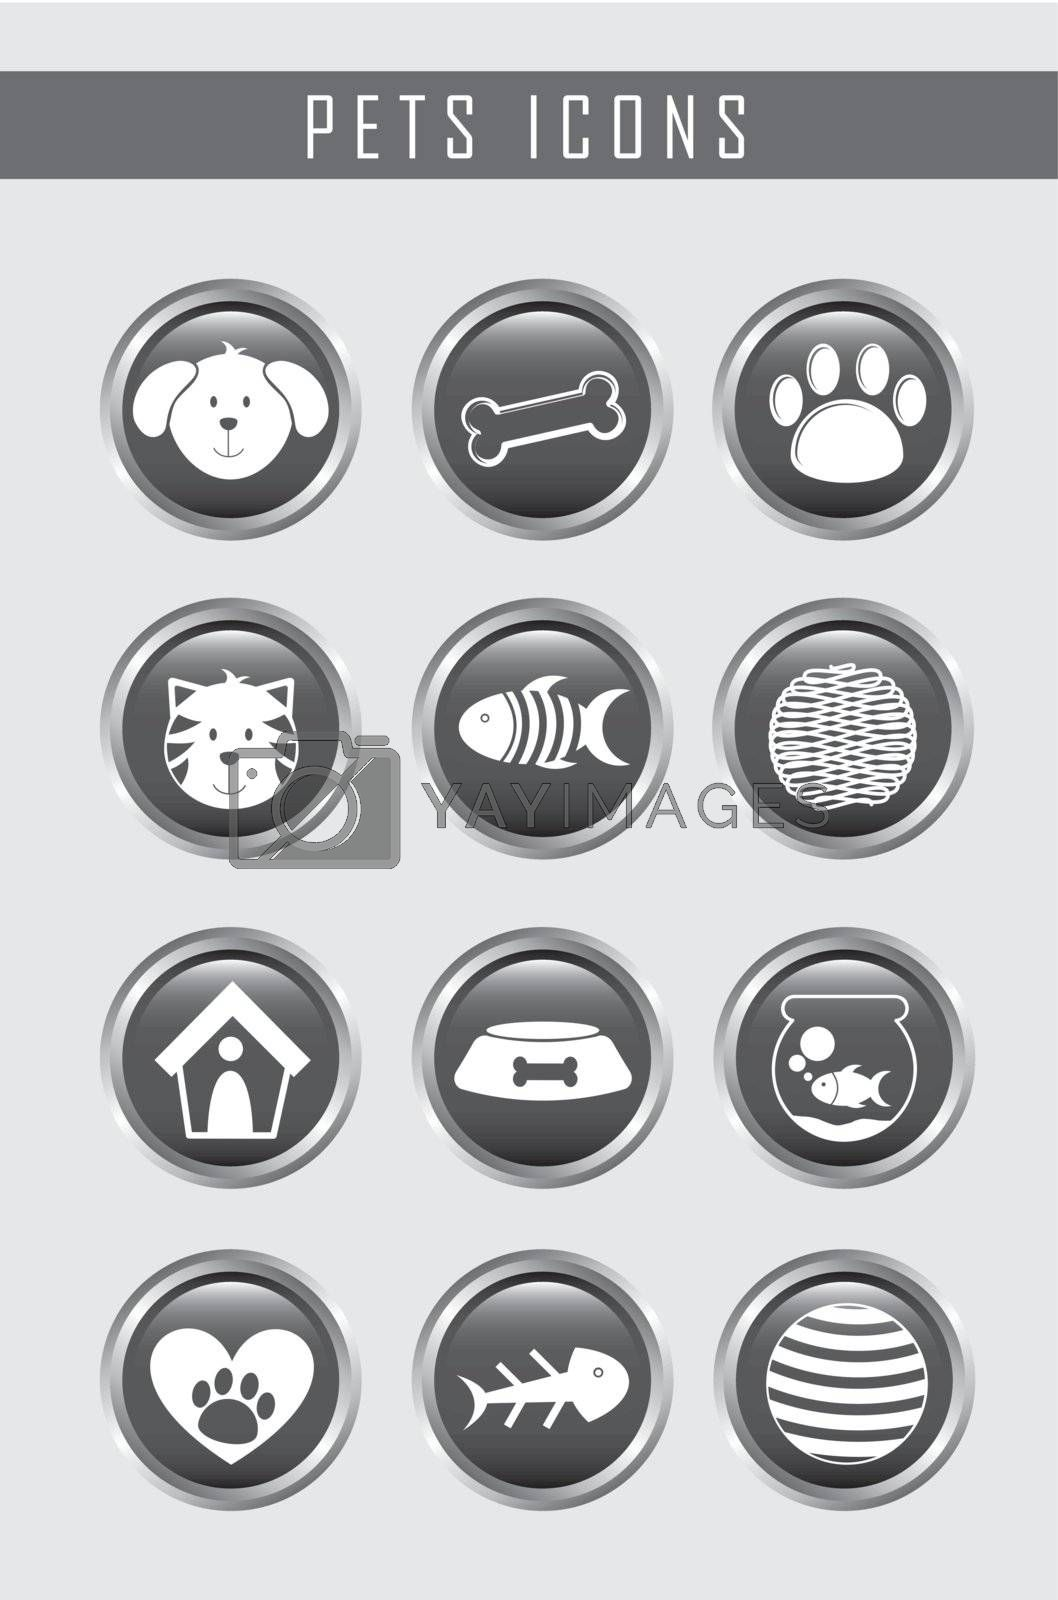 pets icons over gray background. vector illustration